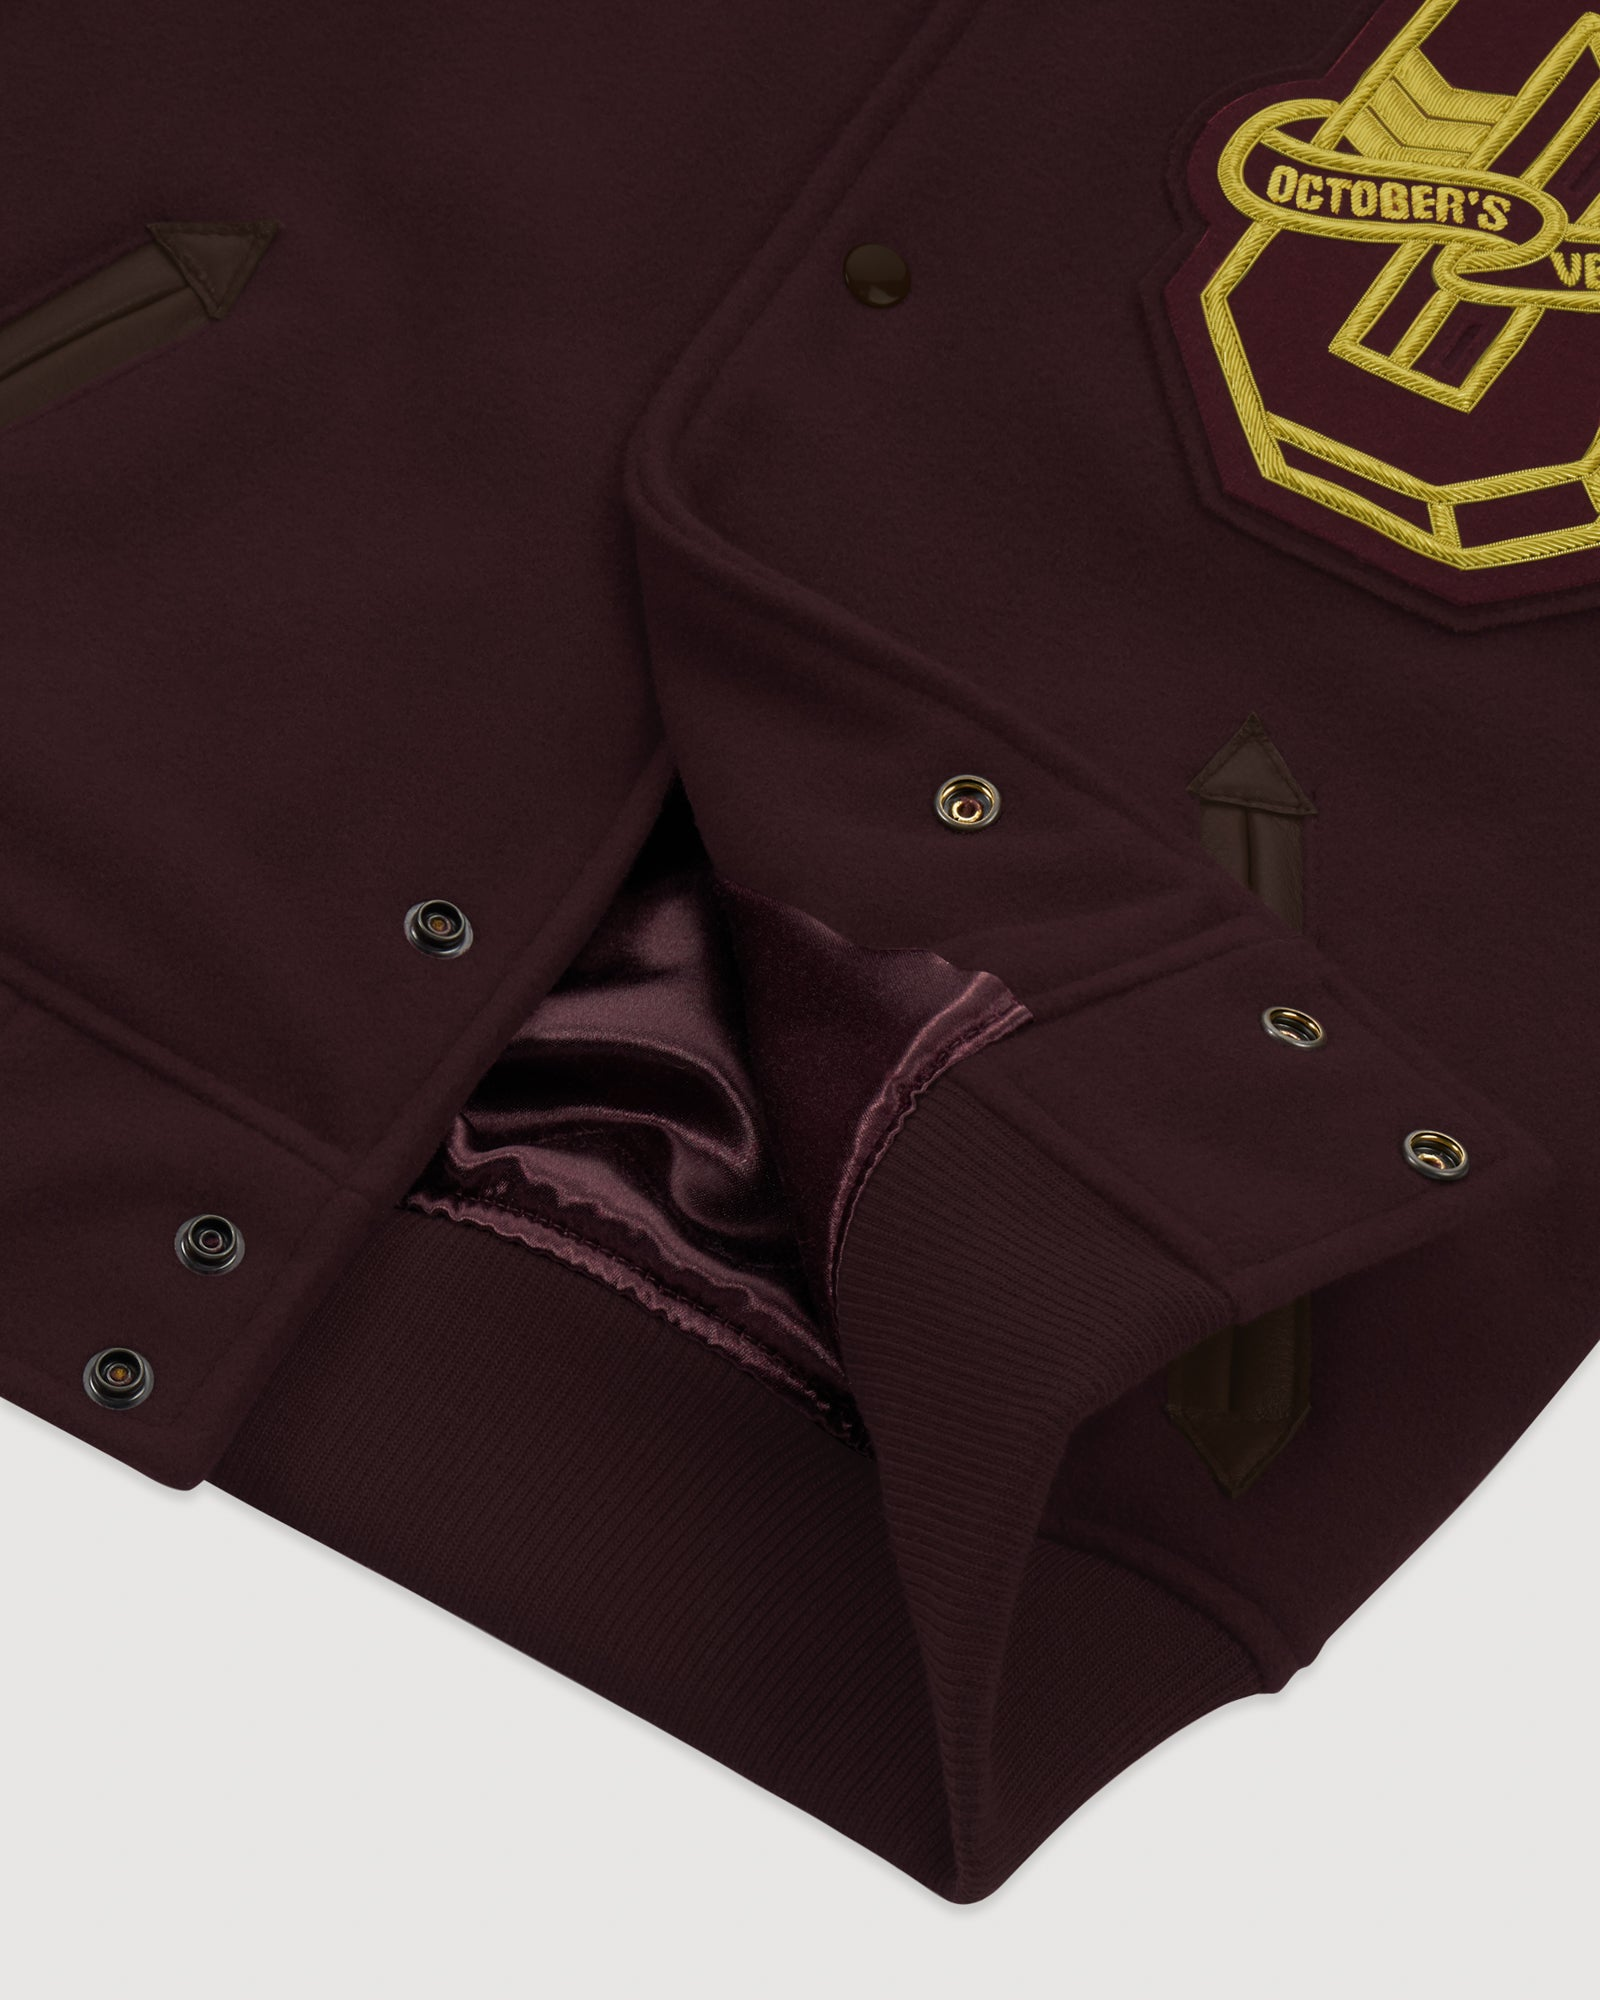 OVO GRADUATE MELTON LEATHER JACKET - BURGUNDY